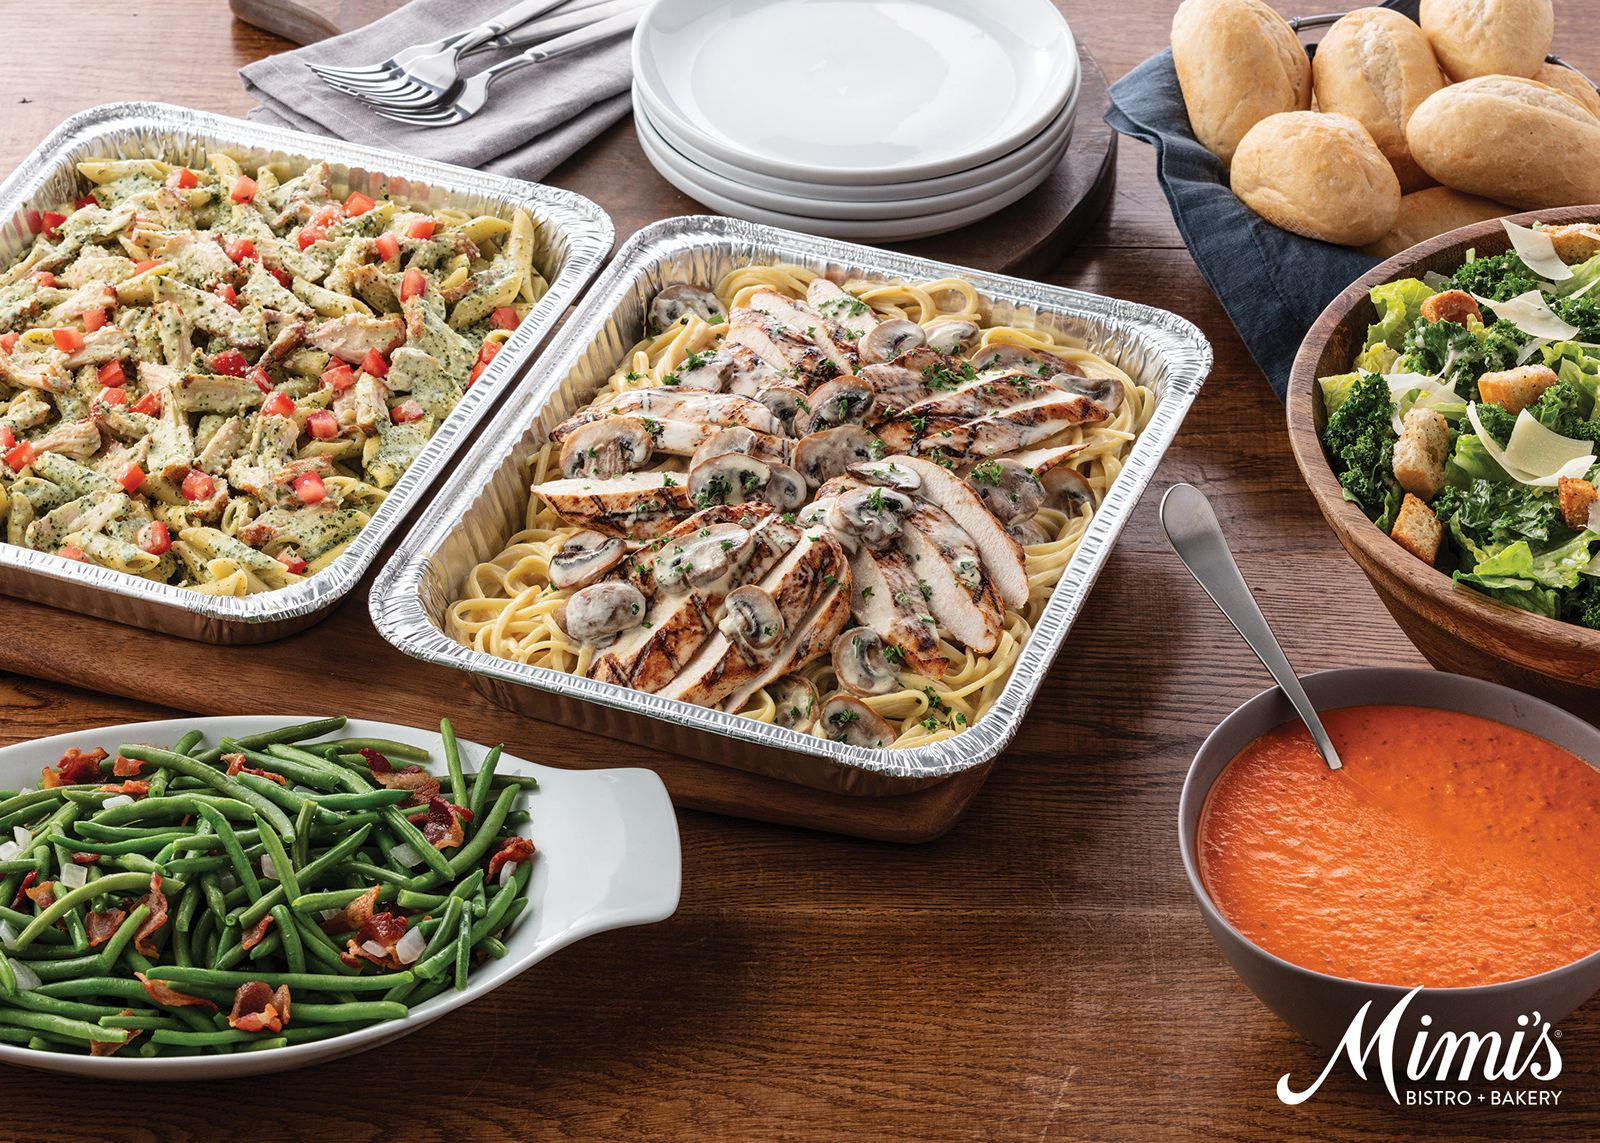 Mimi's Bistro & Bakery Launches New Catering Menu and Online Experience